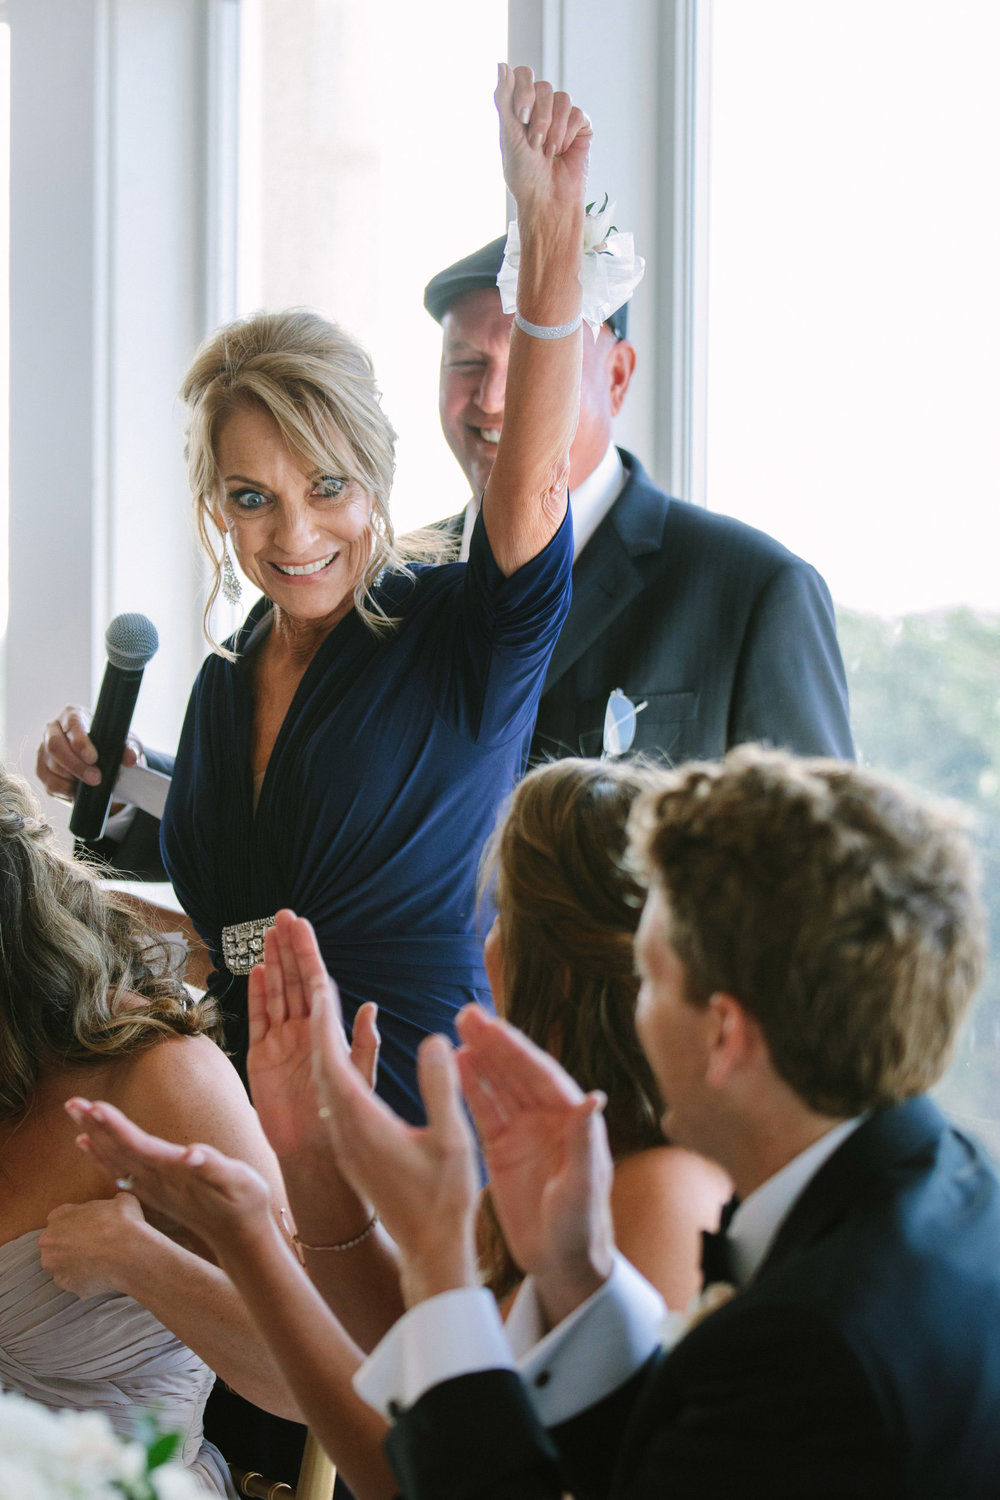 golden_gate_yacht_club_wedding_43.jpg